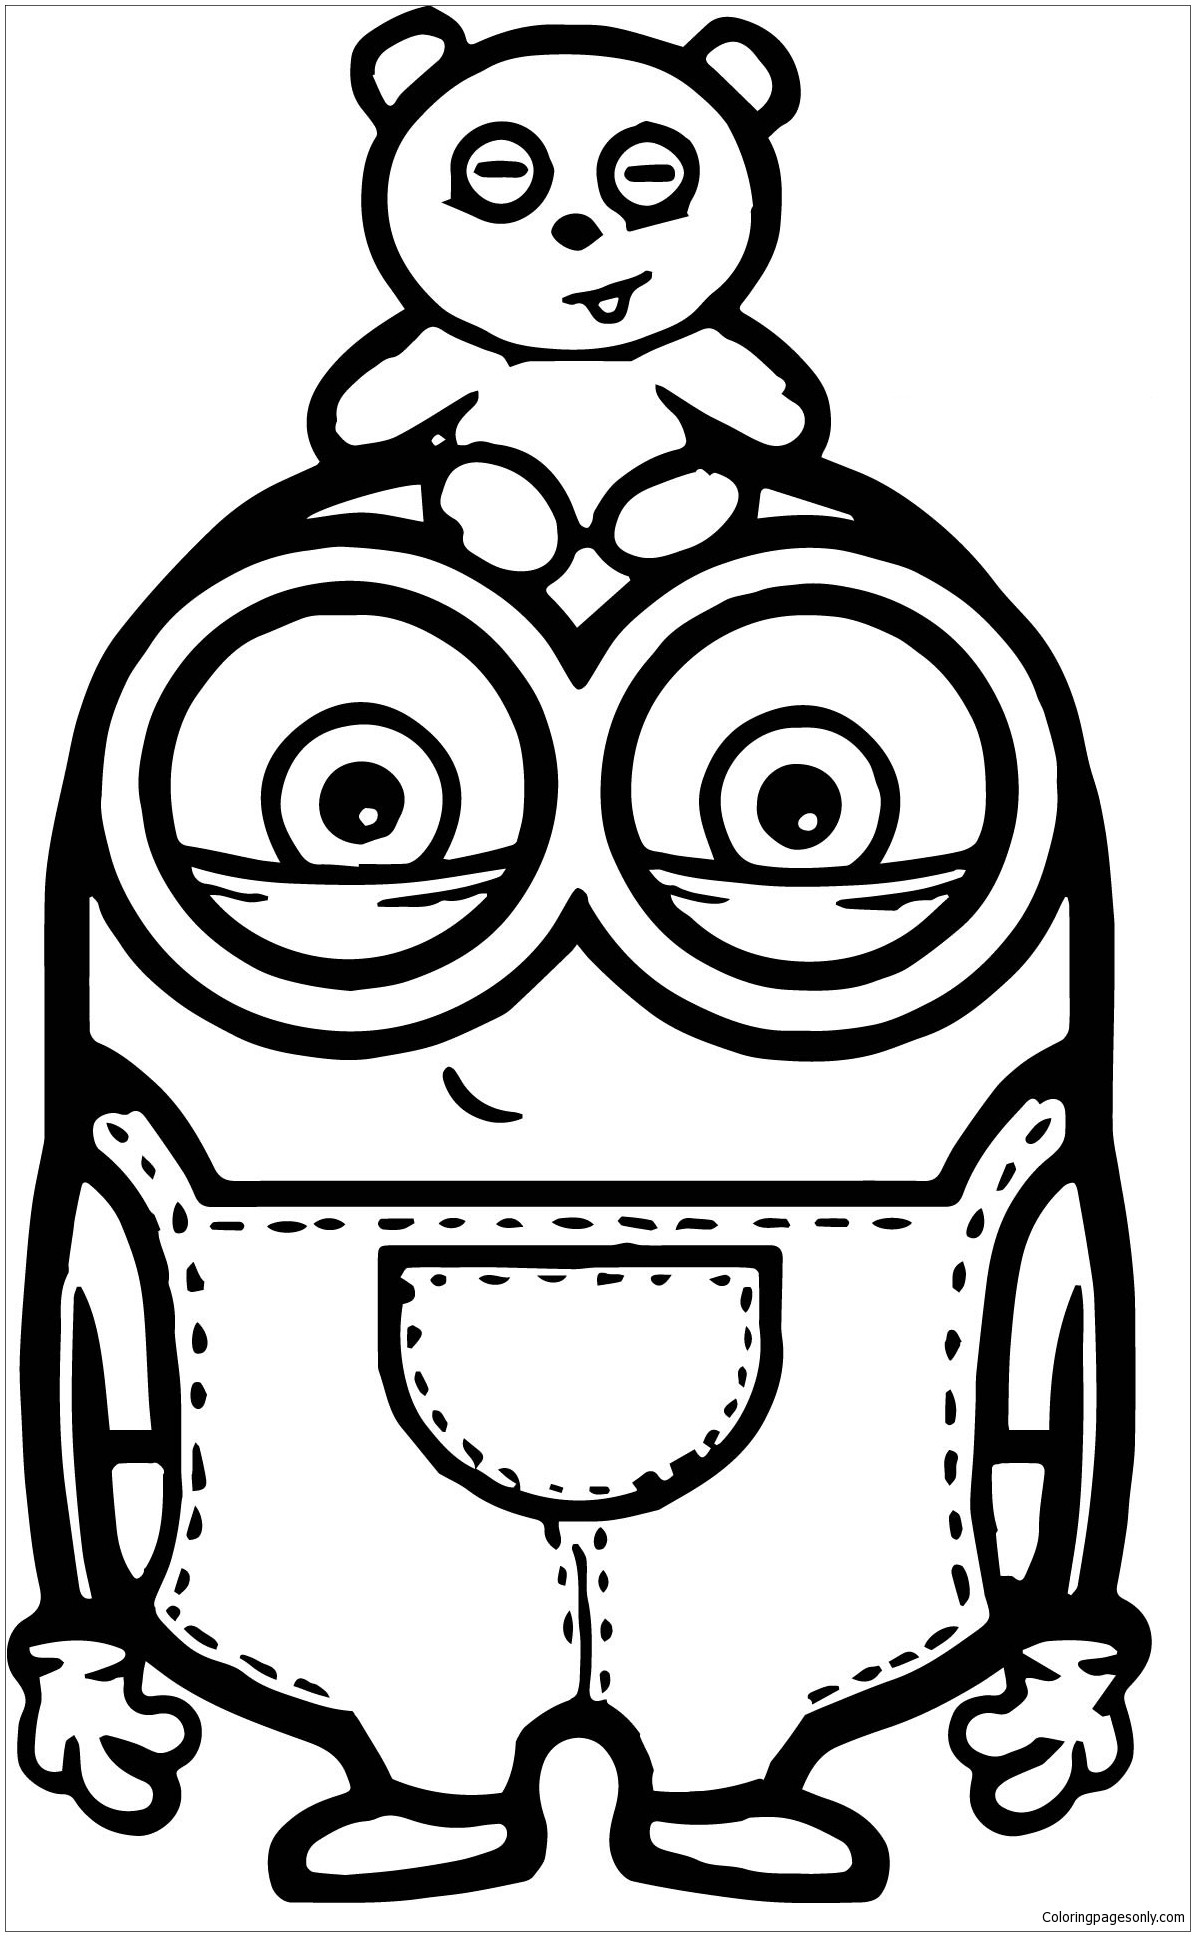 free coloring pages minions minion coloring pages printable for kids minion coloring minions free pages coloring